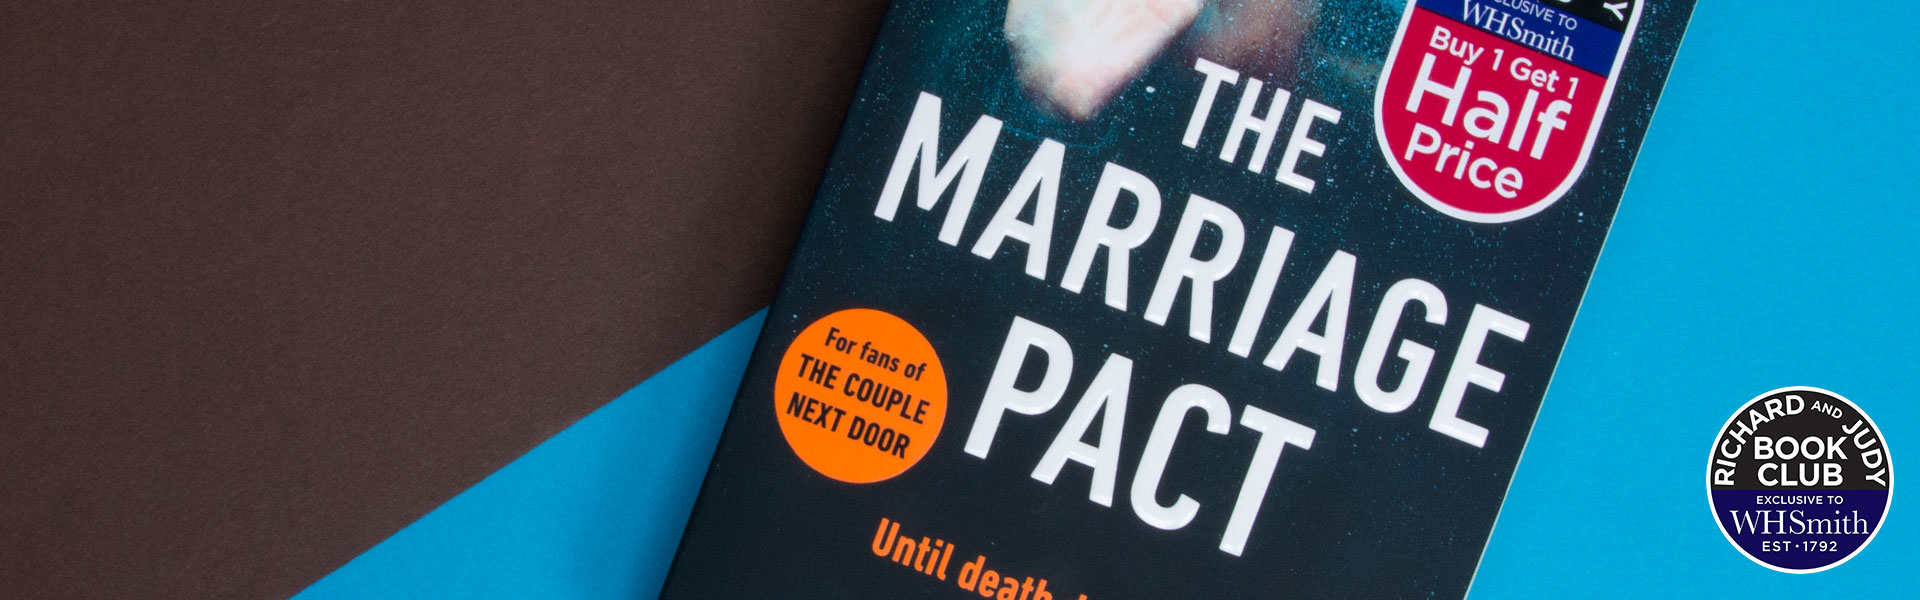 Michelle Richmond: 5 Companion Books (and a Film) for The Marriage Pact